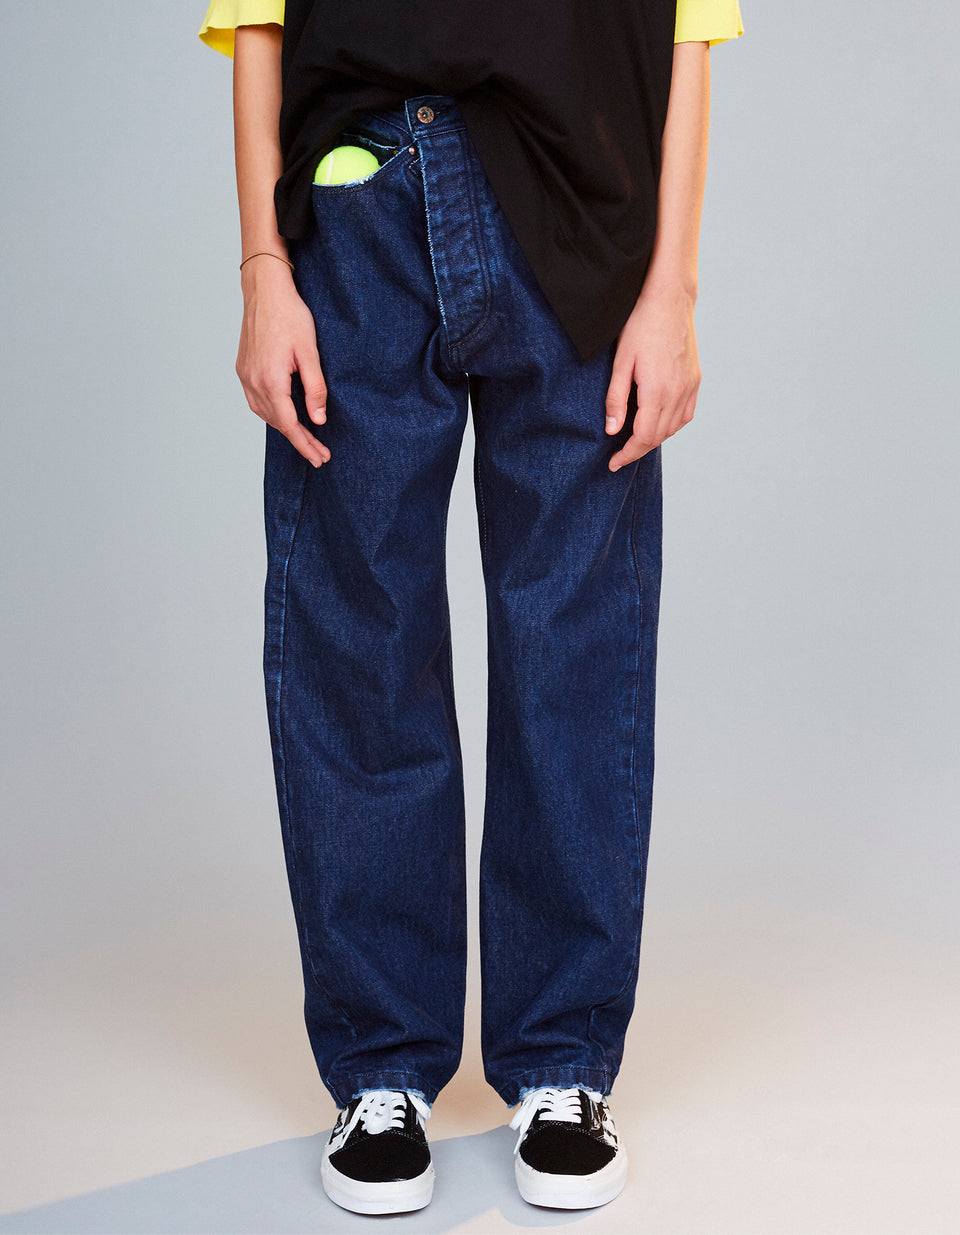 Indigo Denim Pants - 38 navy